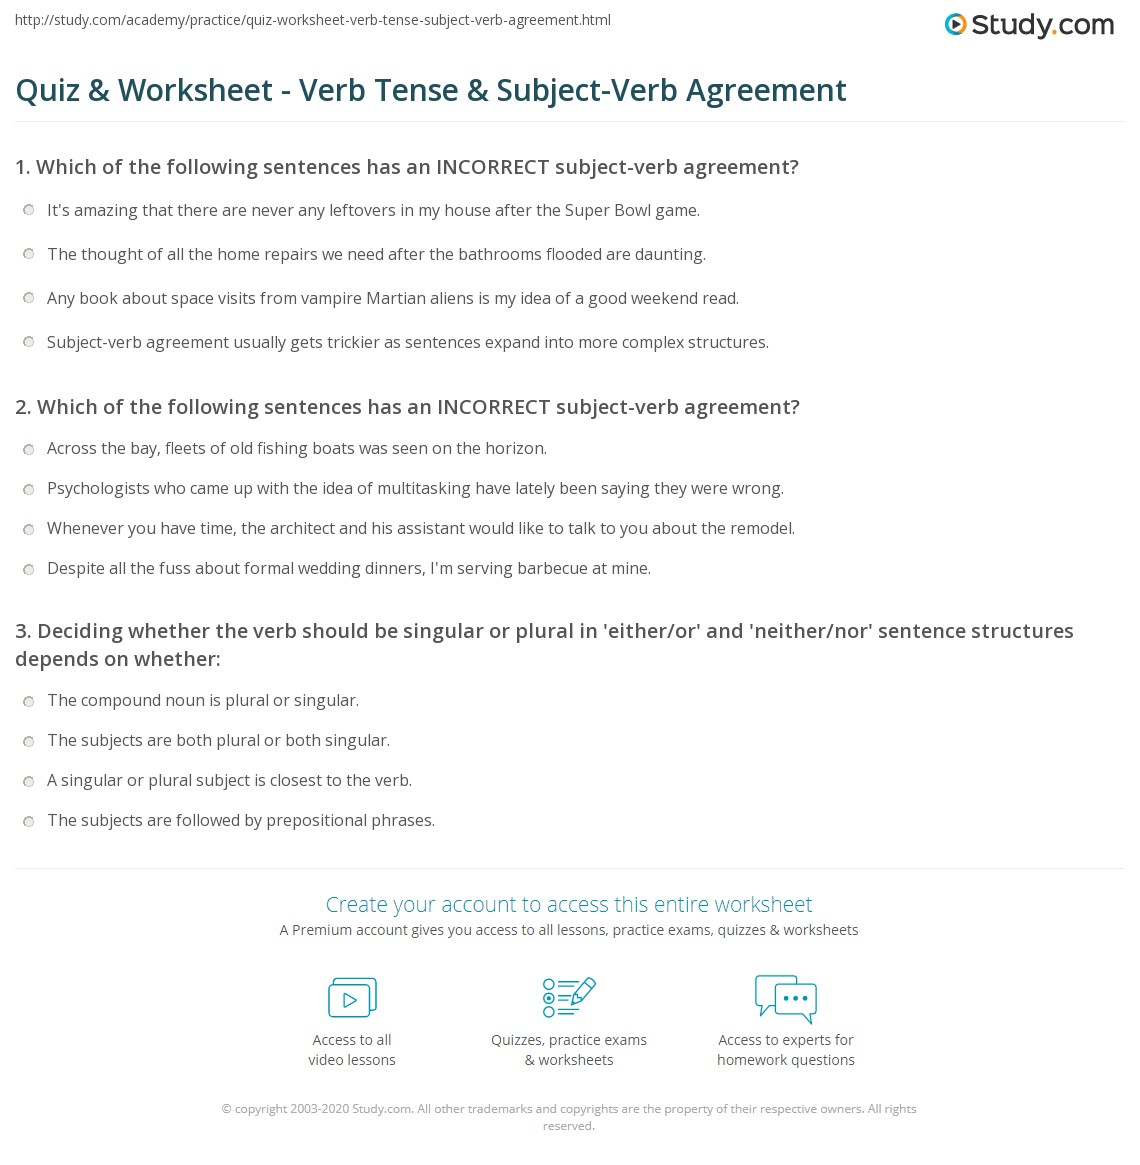 worksheets verb tense agreement kidz activities. Black Bedroom Furniture Sets. Home Design Ideas